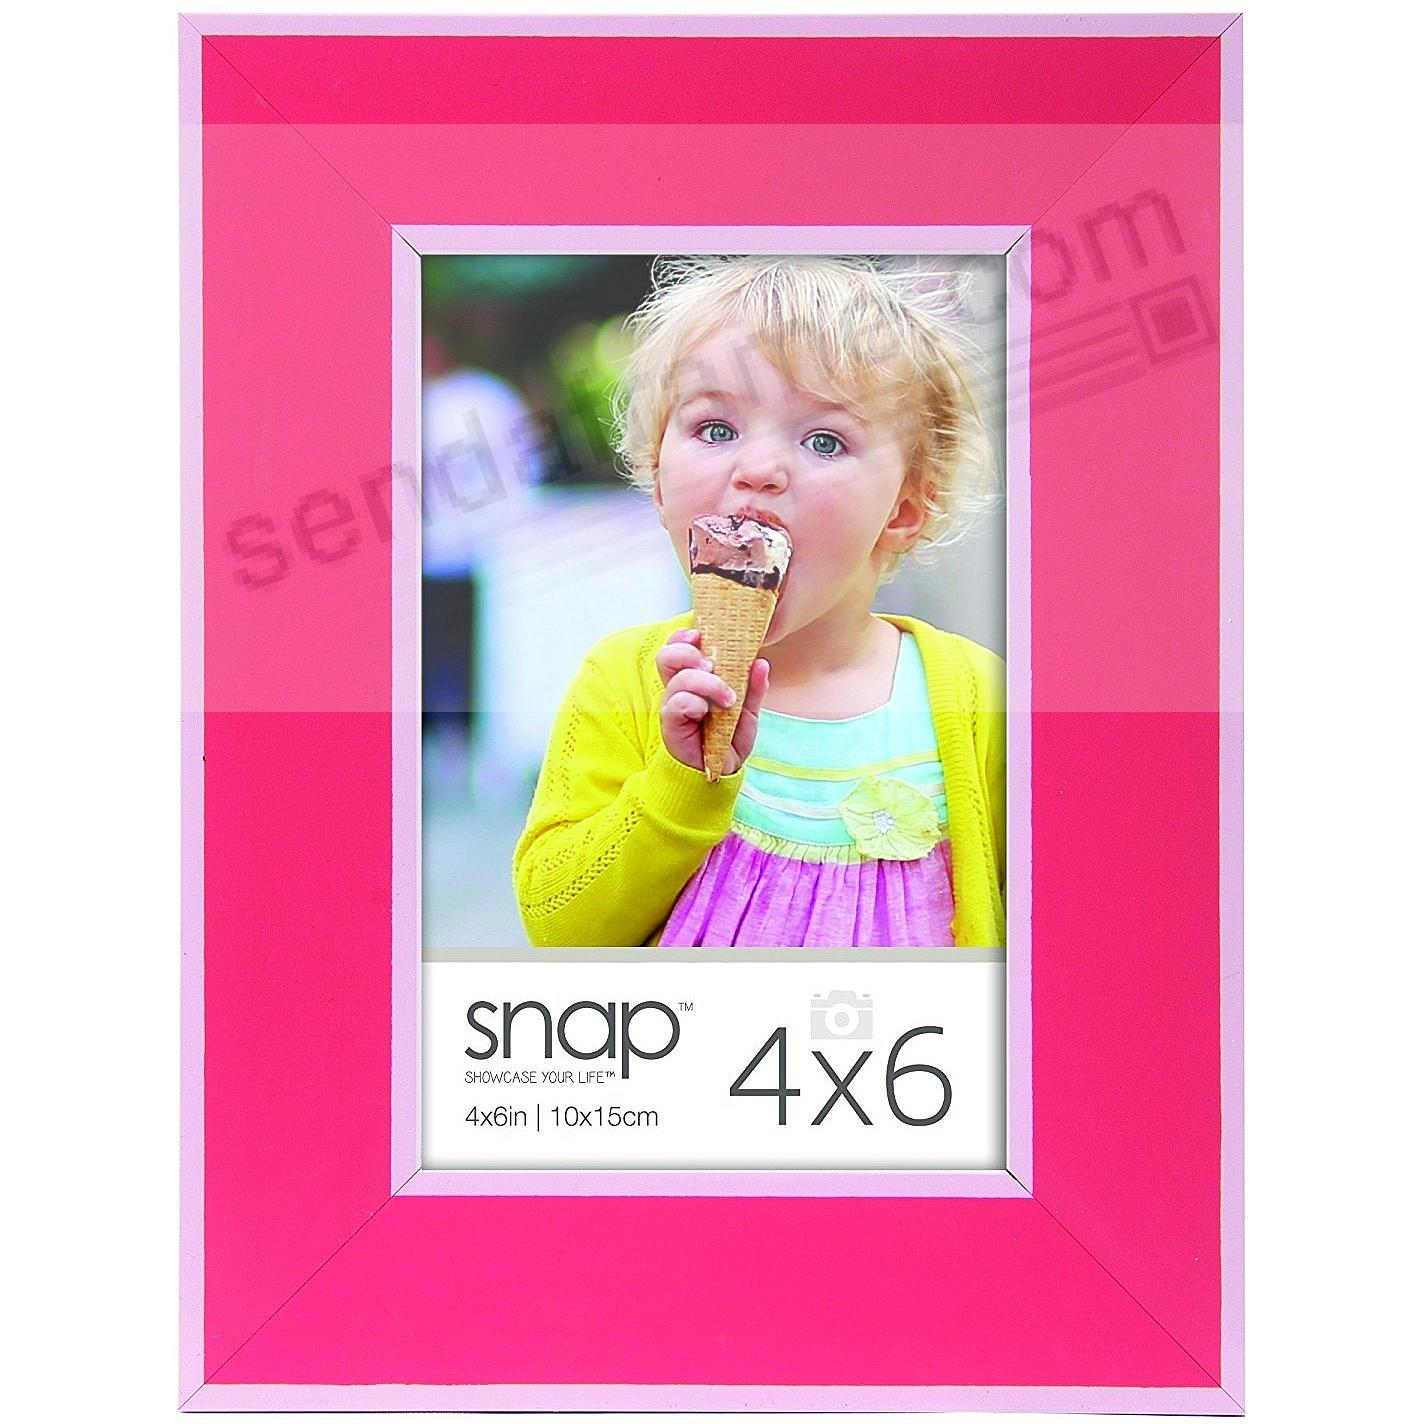 PINK w/White Accent 4x6 frame by SNAP®